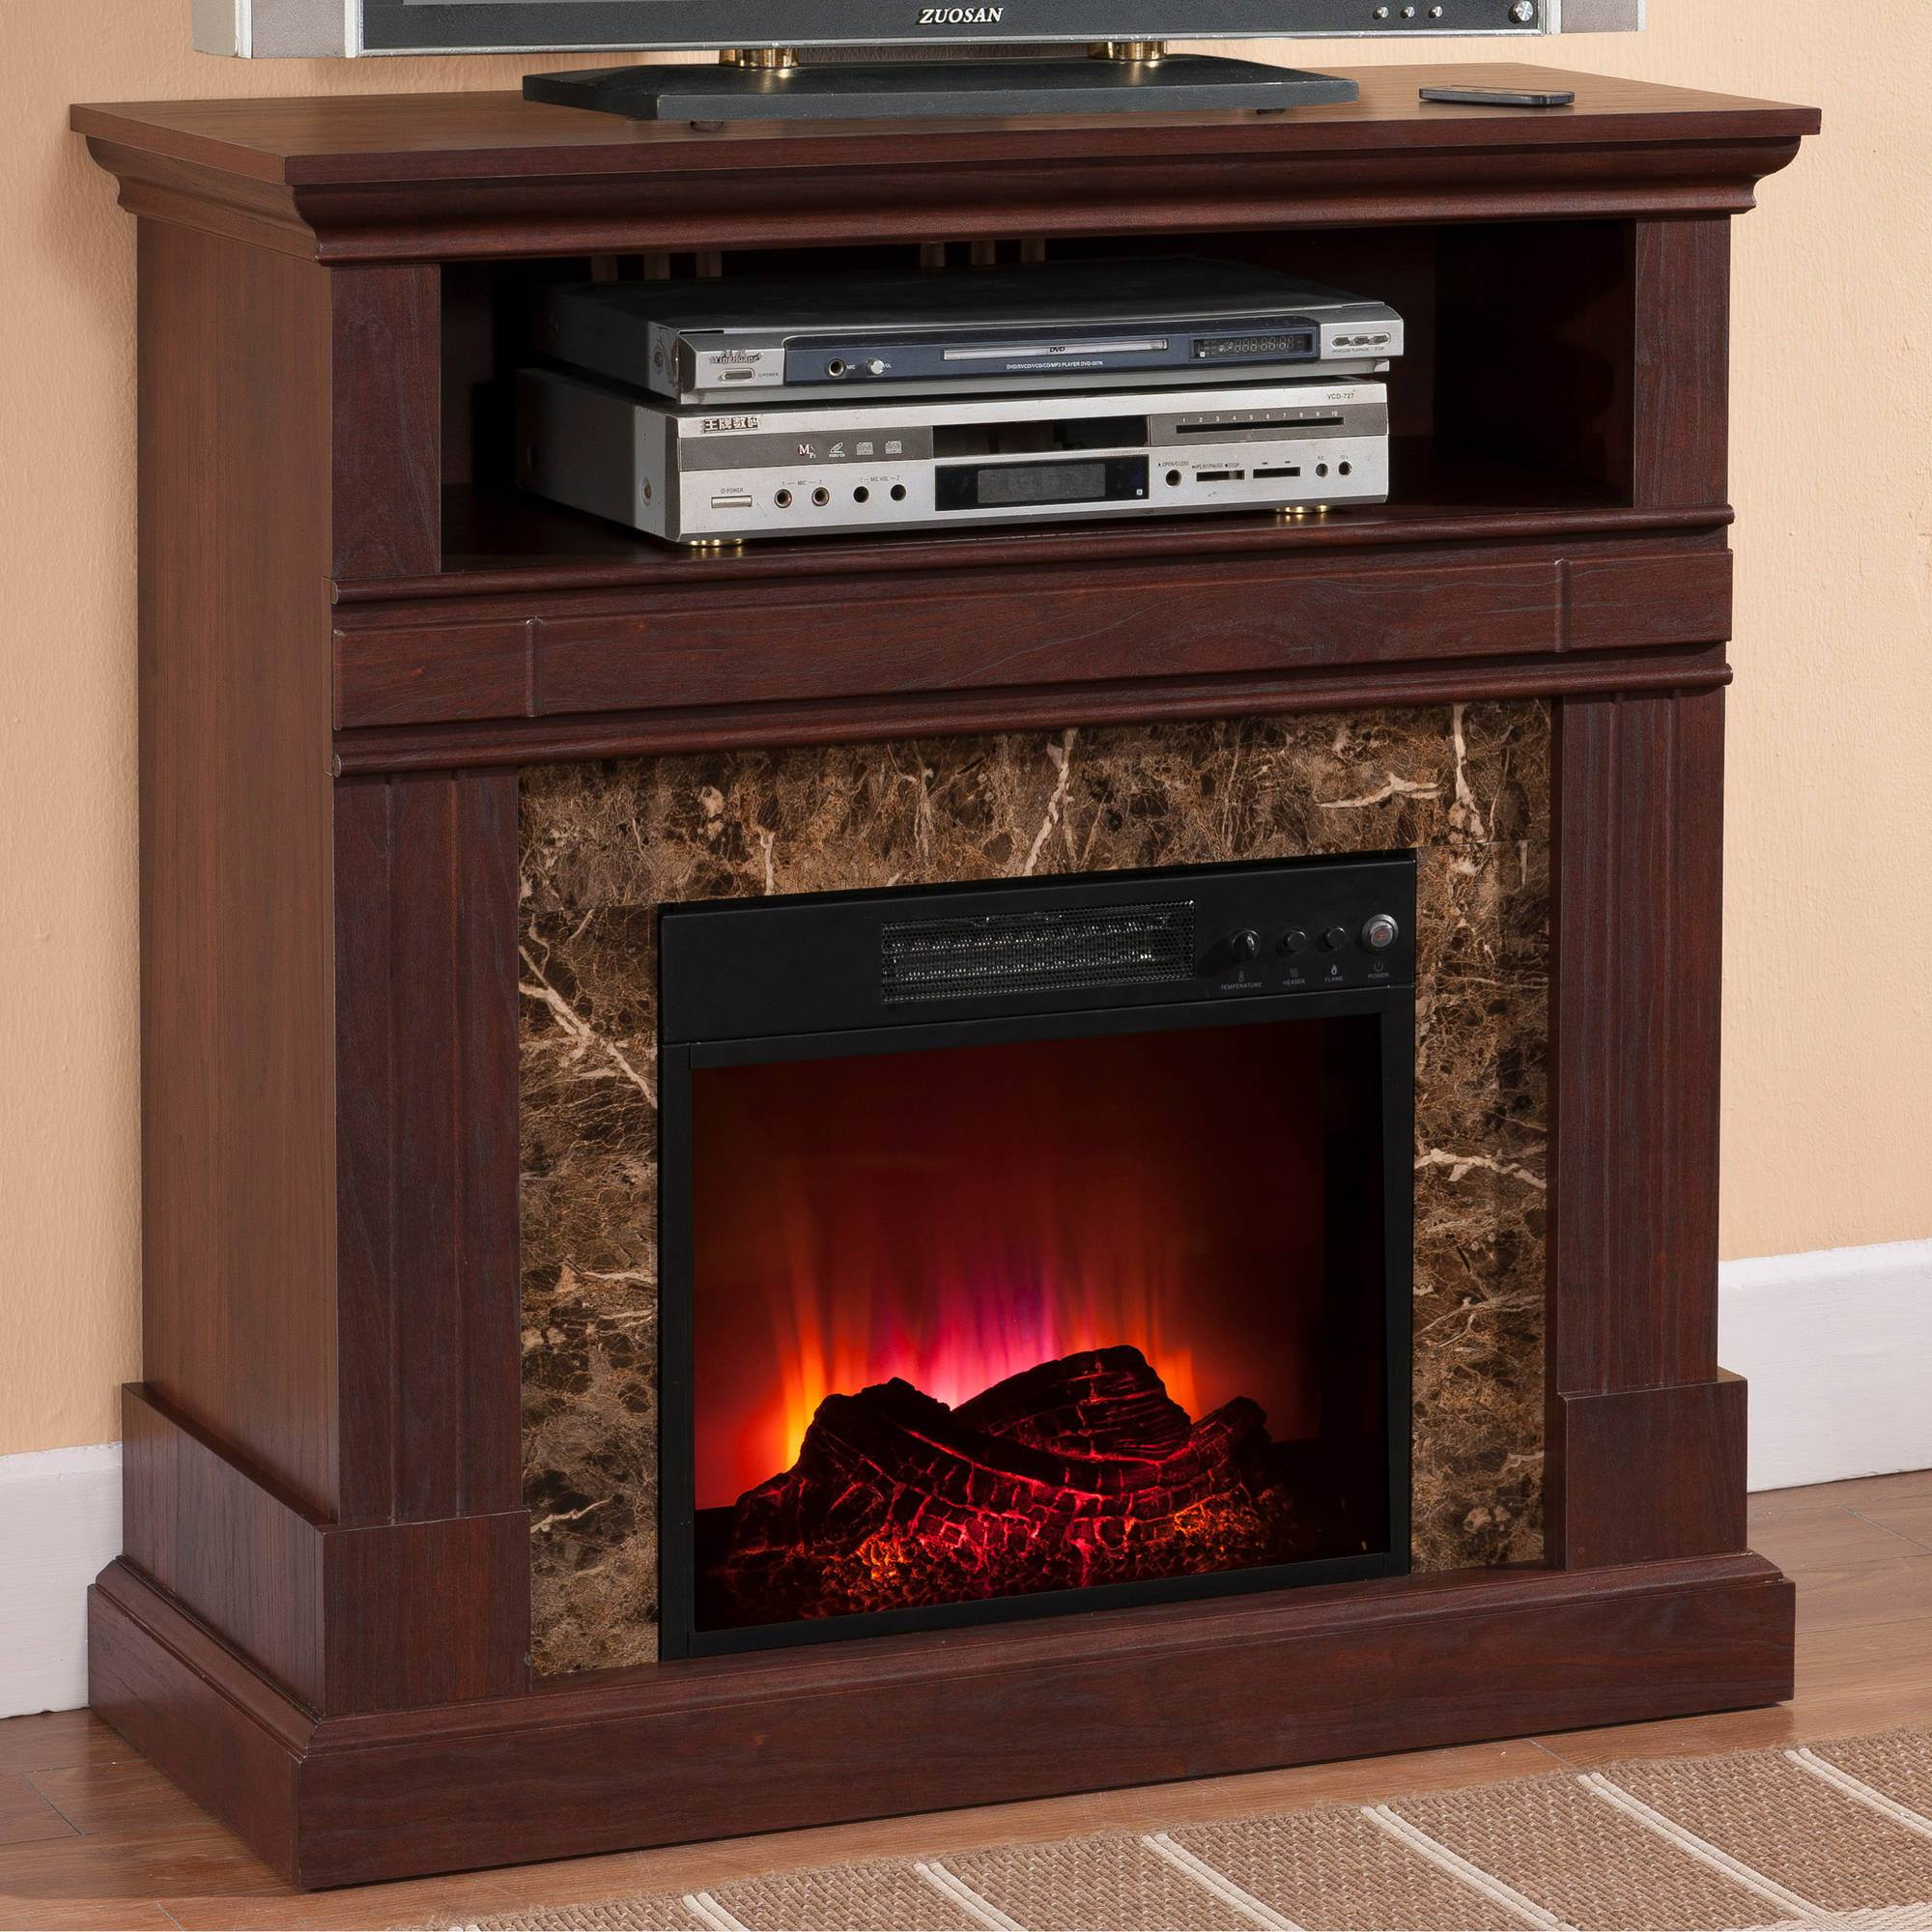 Corner Fireplace Tv Stand Inspirational Corner Electric Fireplace Tv Stand